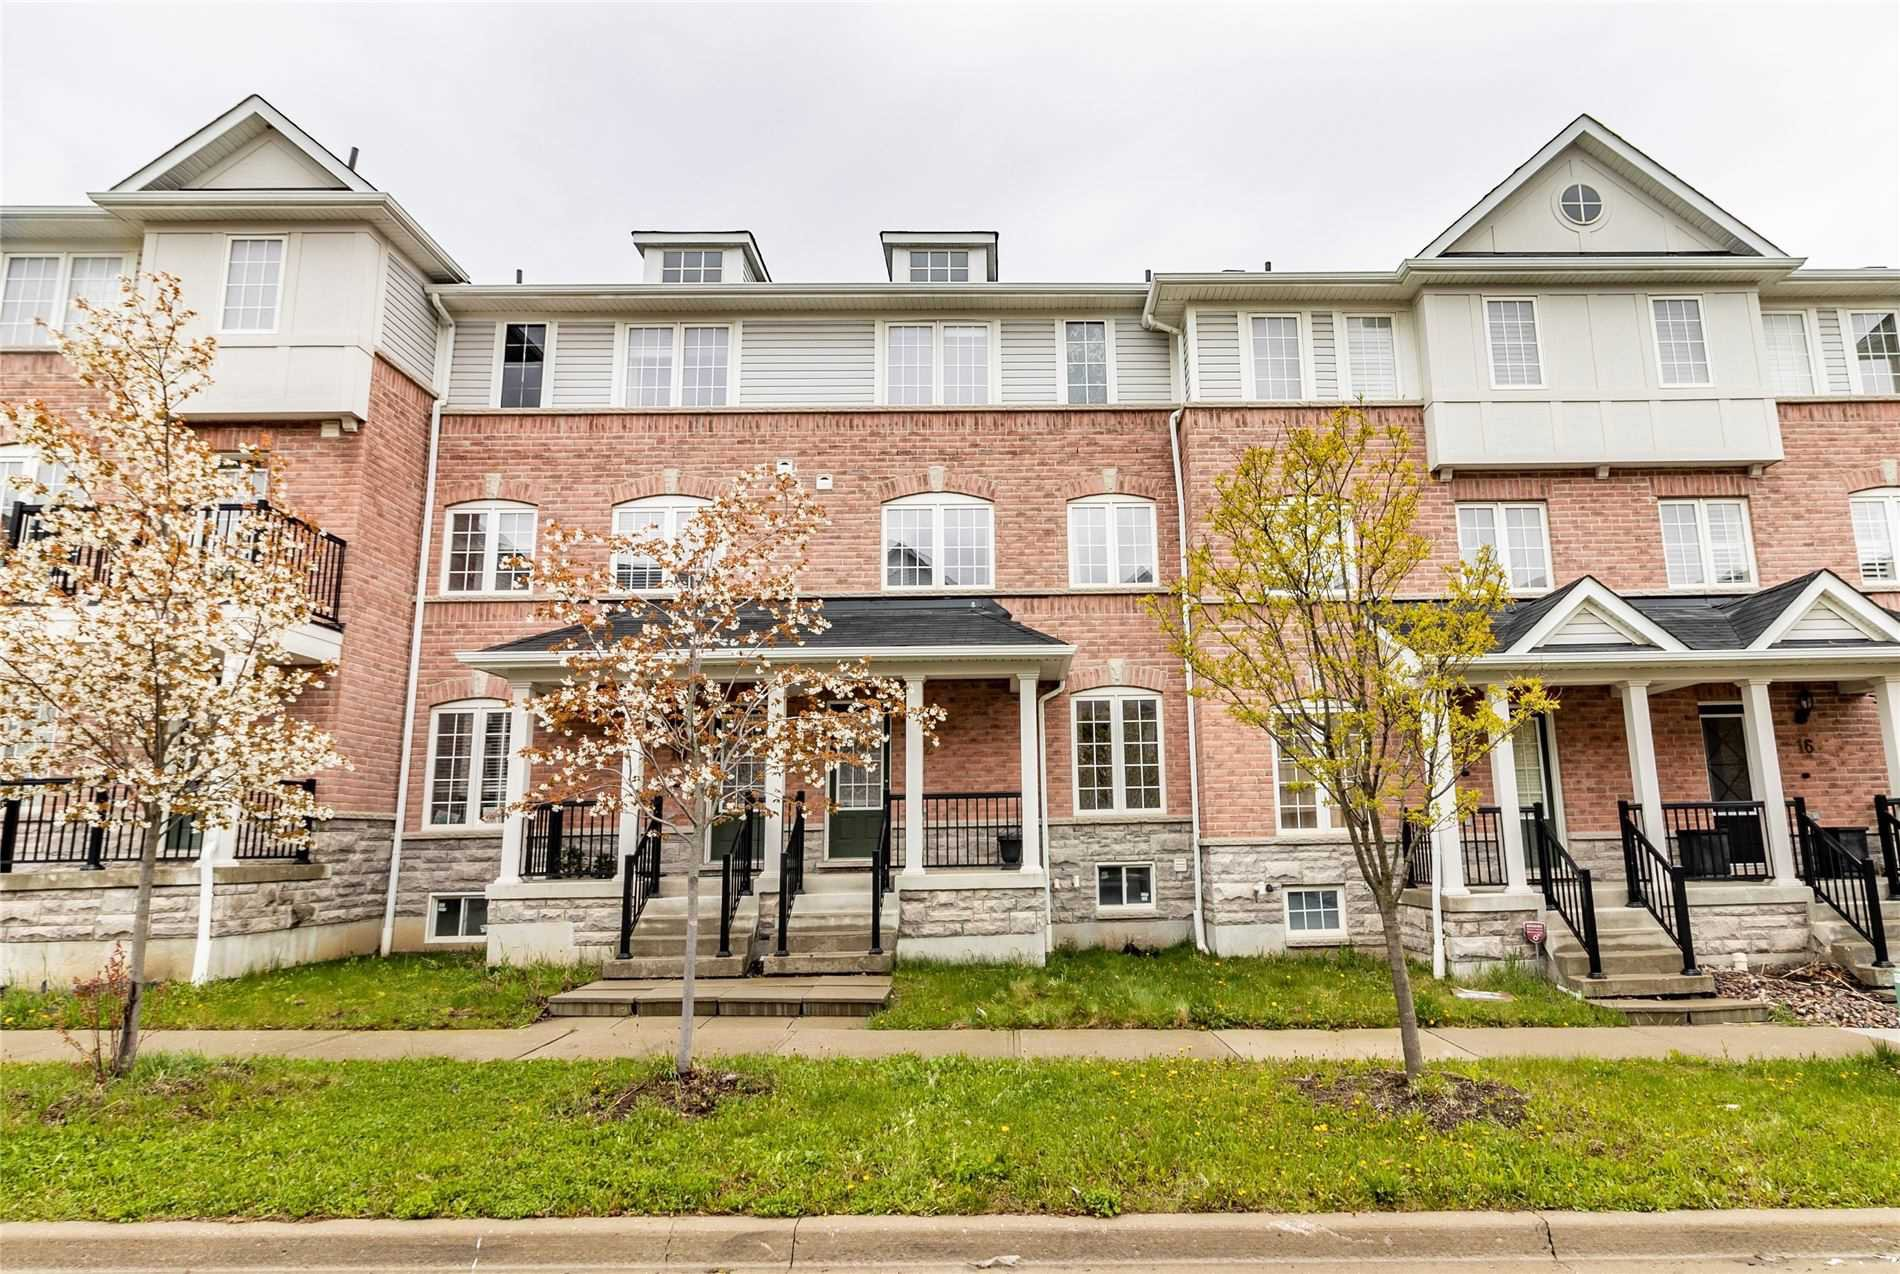 Main Photo: 12 Blunden Road in Ajax: Central East House (3-Storey) for sale : MLS®# E4764519